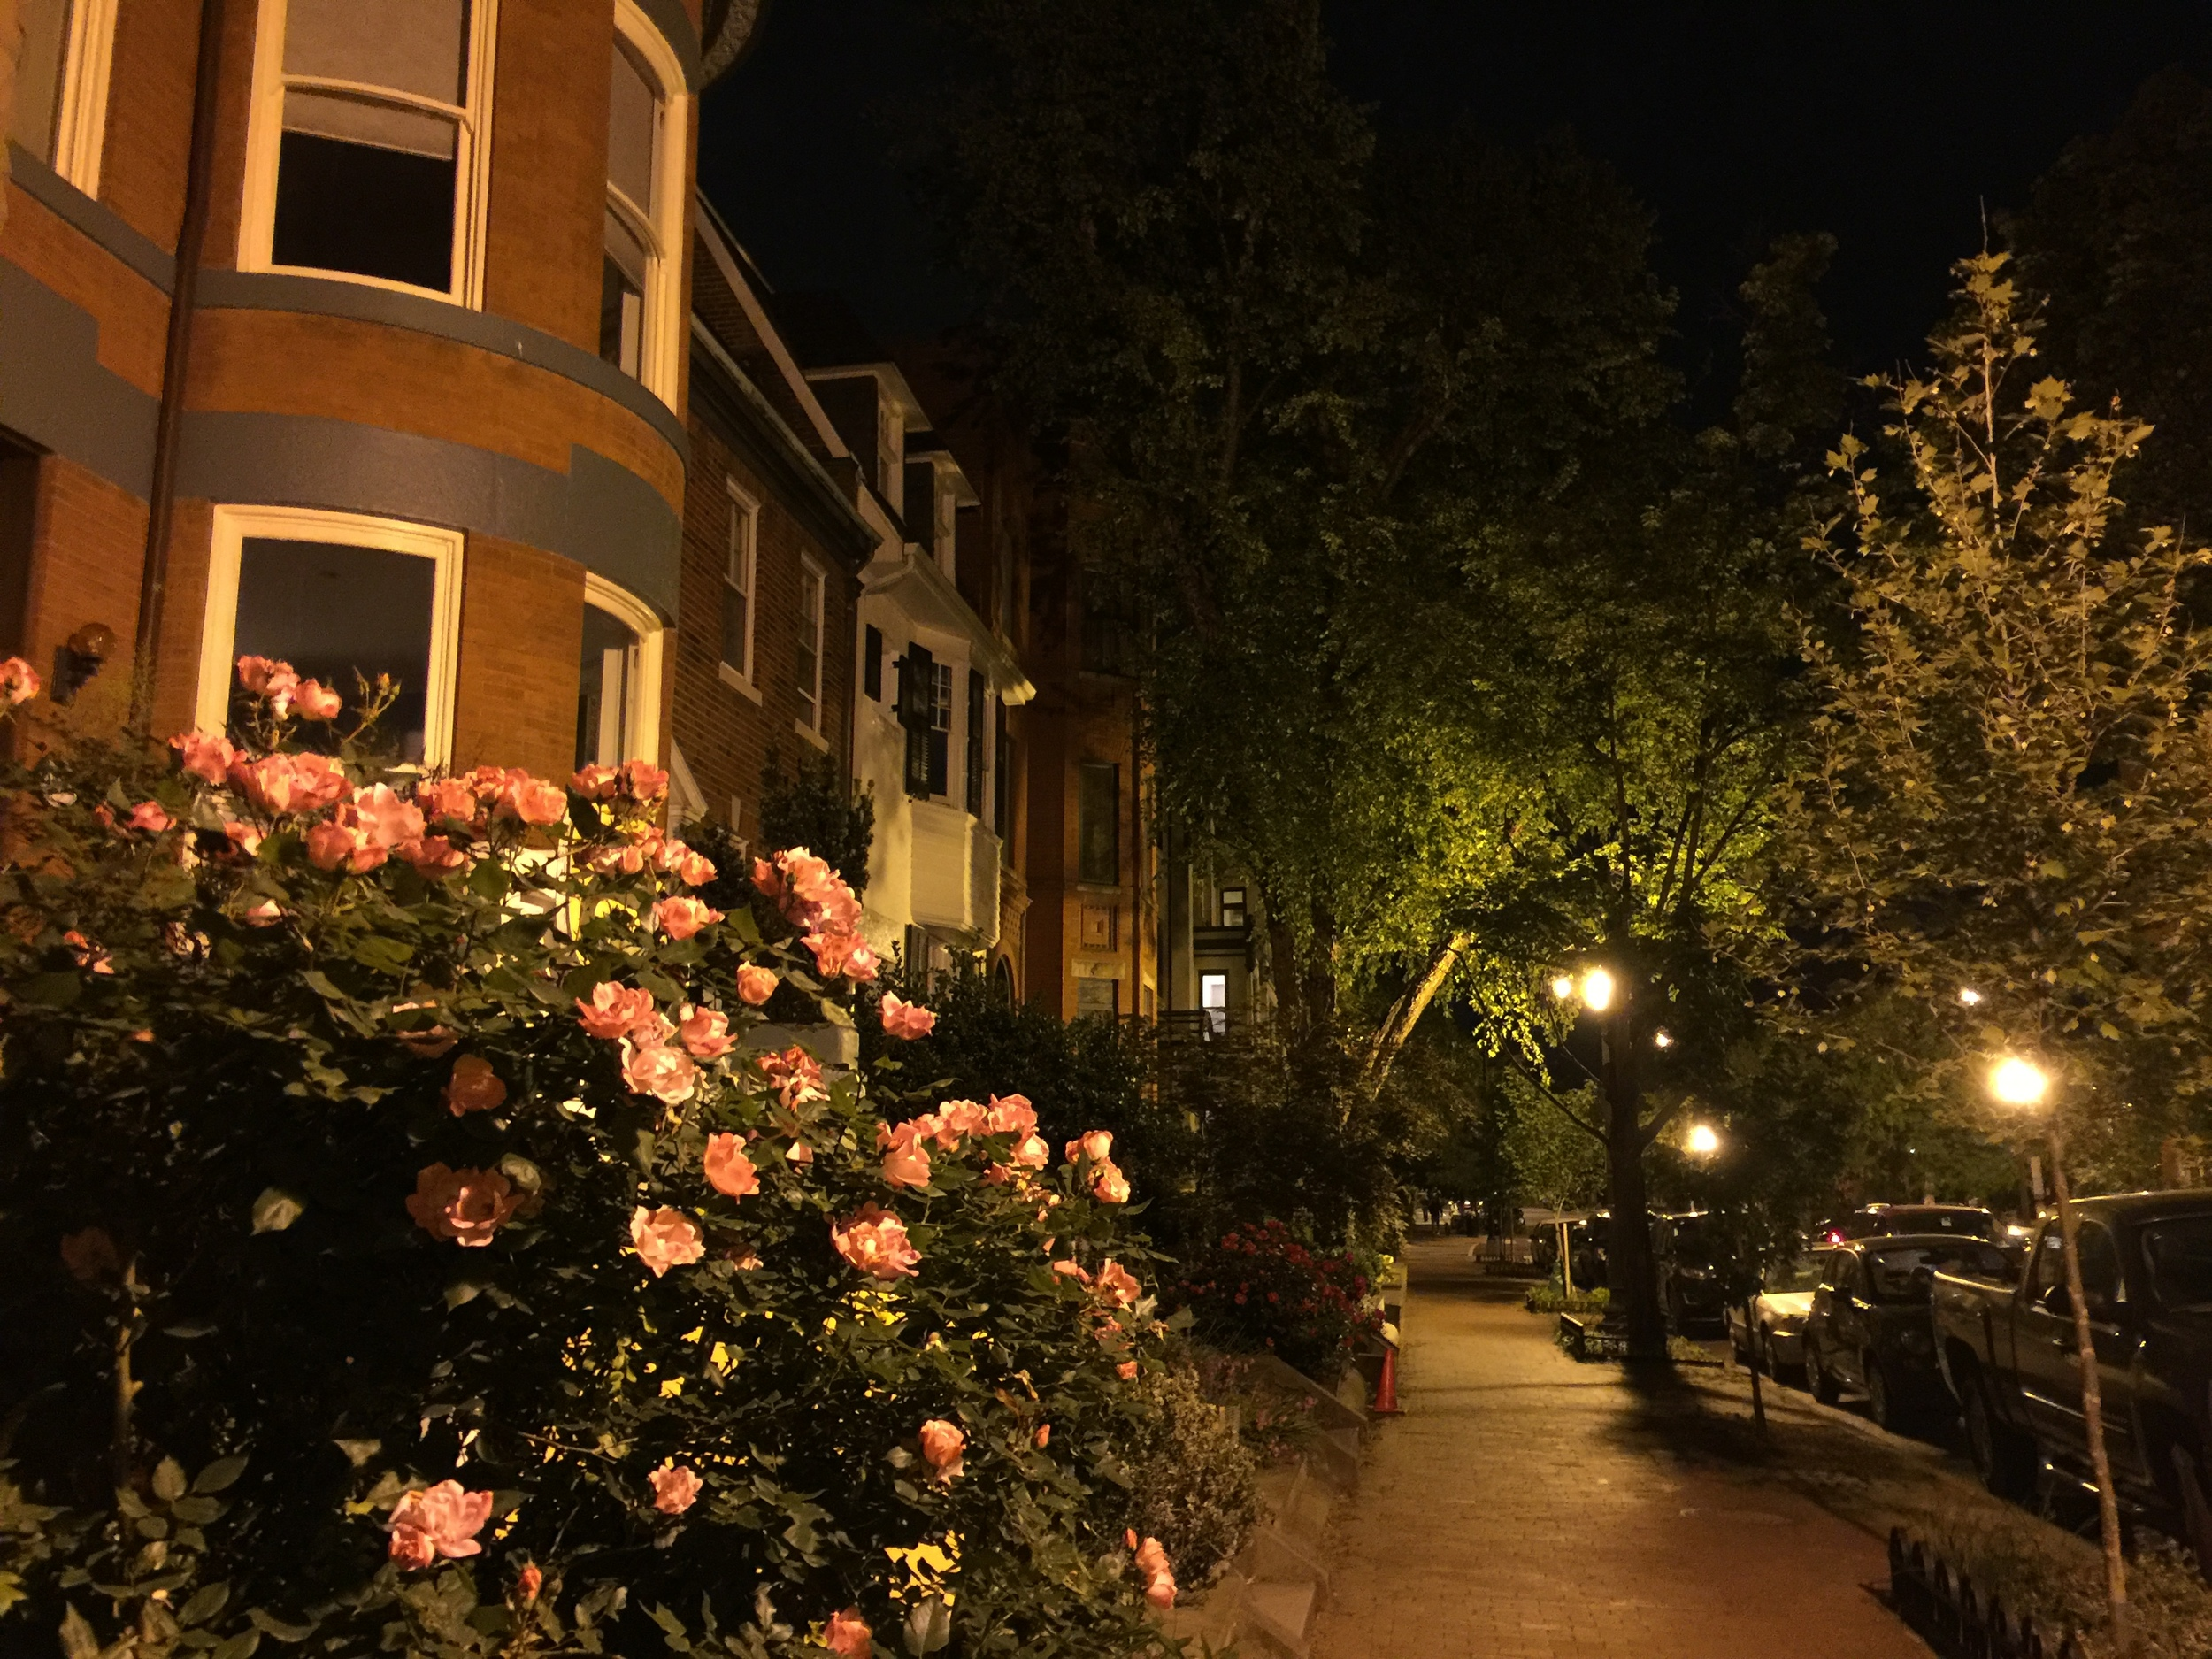 Dupont Circle neighborhood